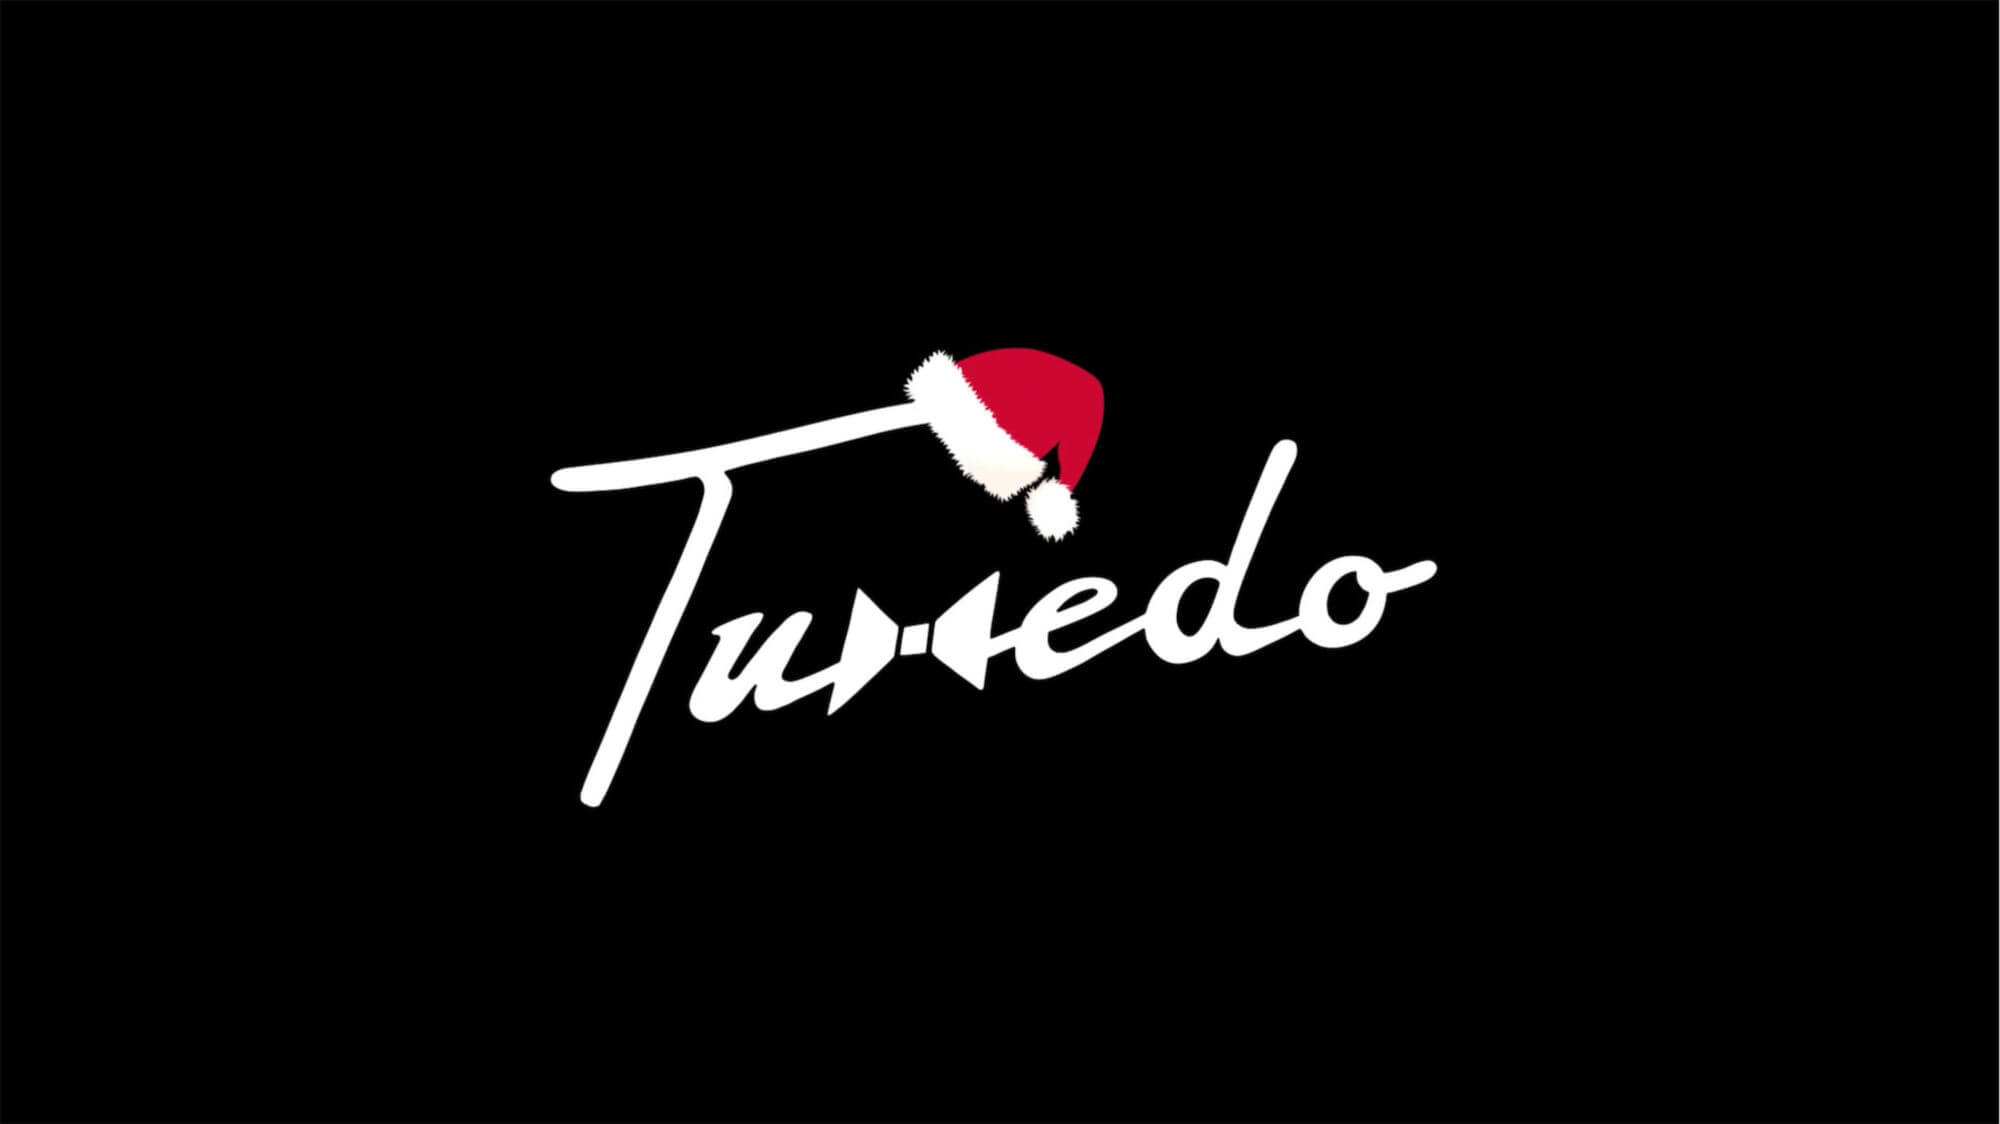 tuxedo covers wonderful christmas time by paul mccartney